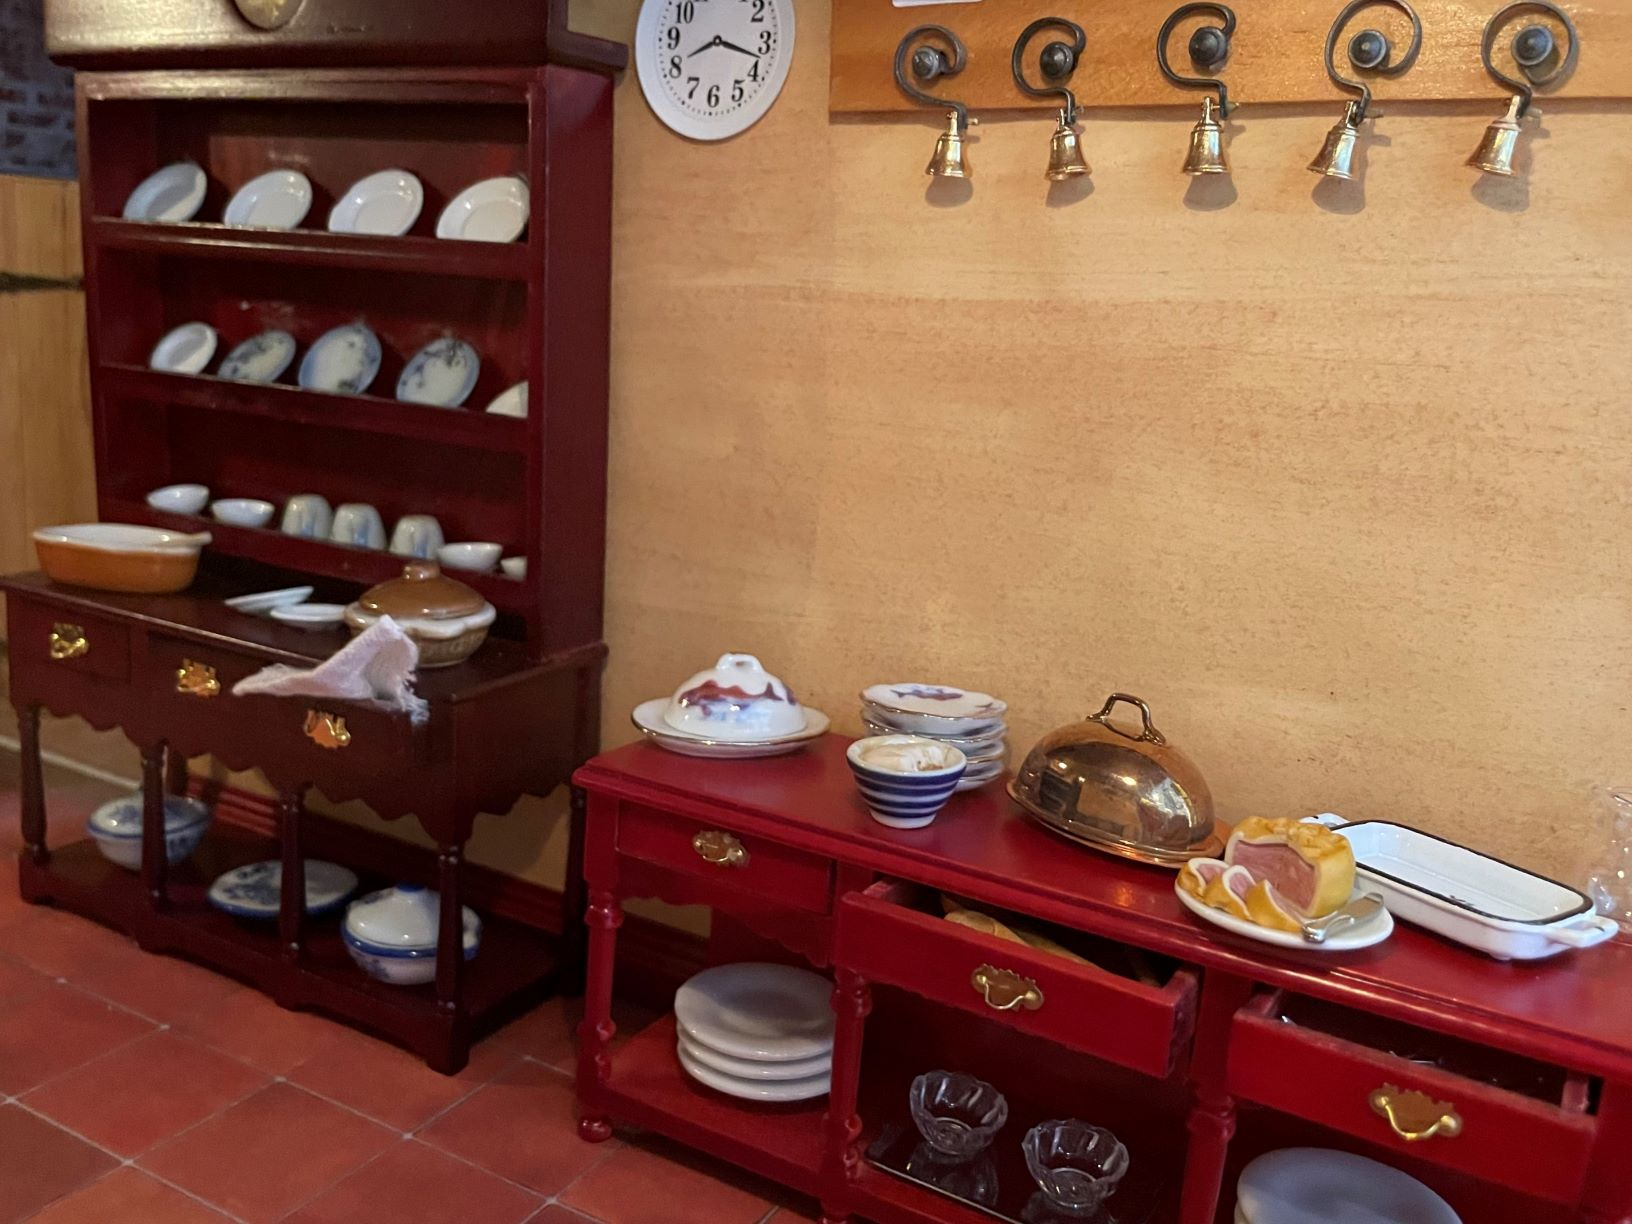 Sideboard & Dishes; Servant Call Bells